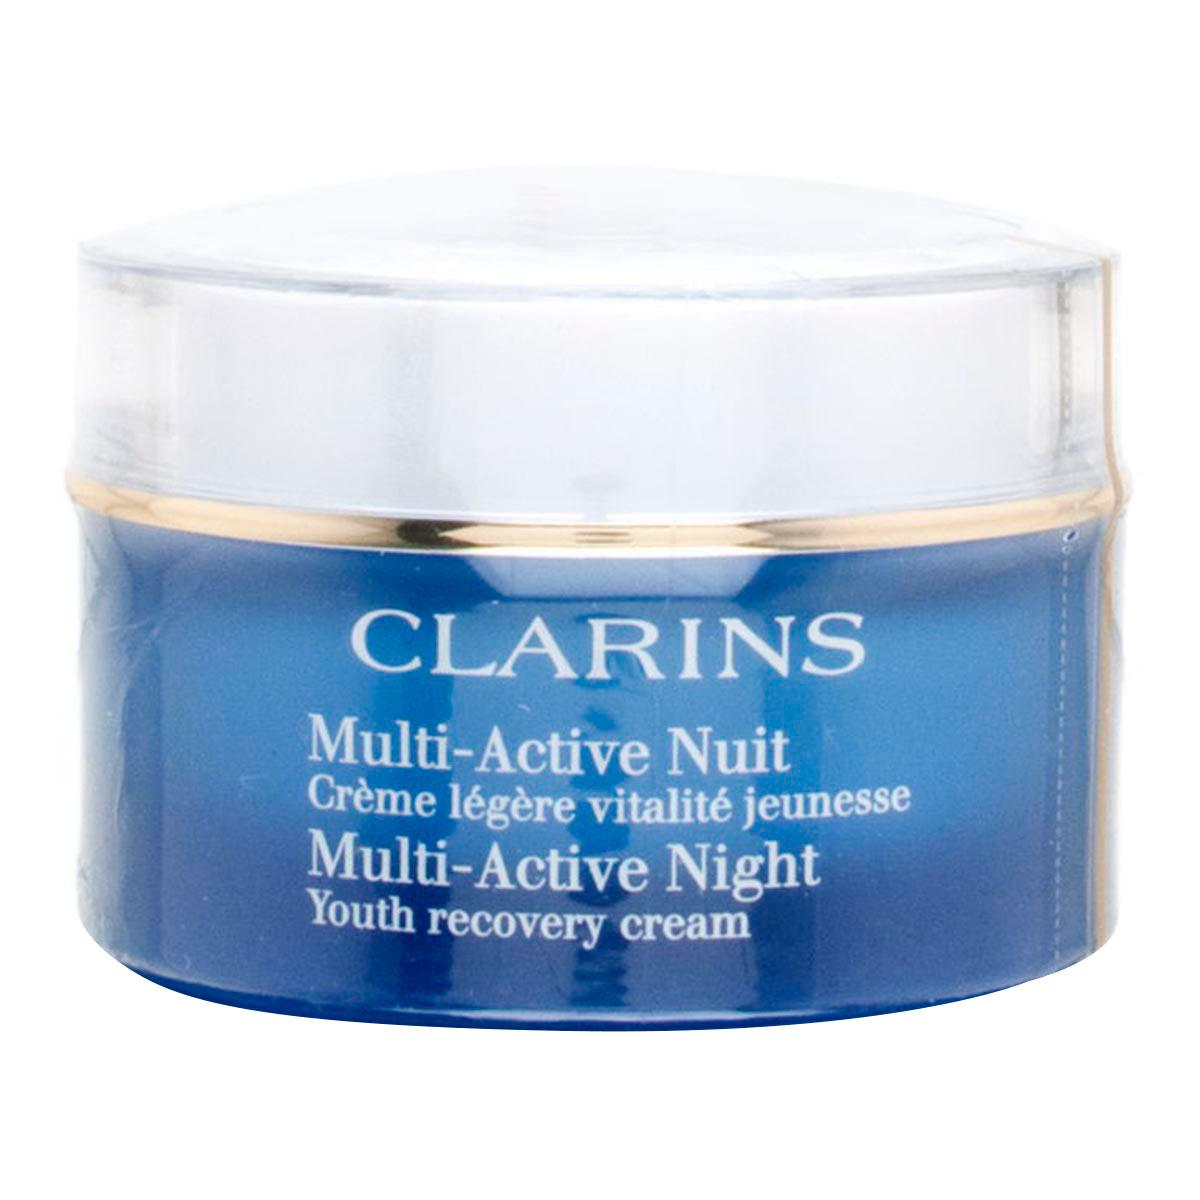 Clarins fragrances Multiactive Night Cream For Normal To Combination Skin 50ml